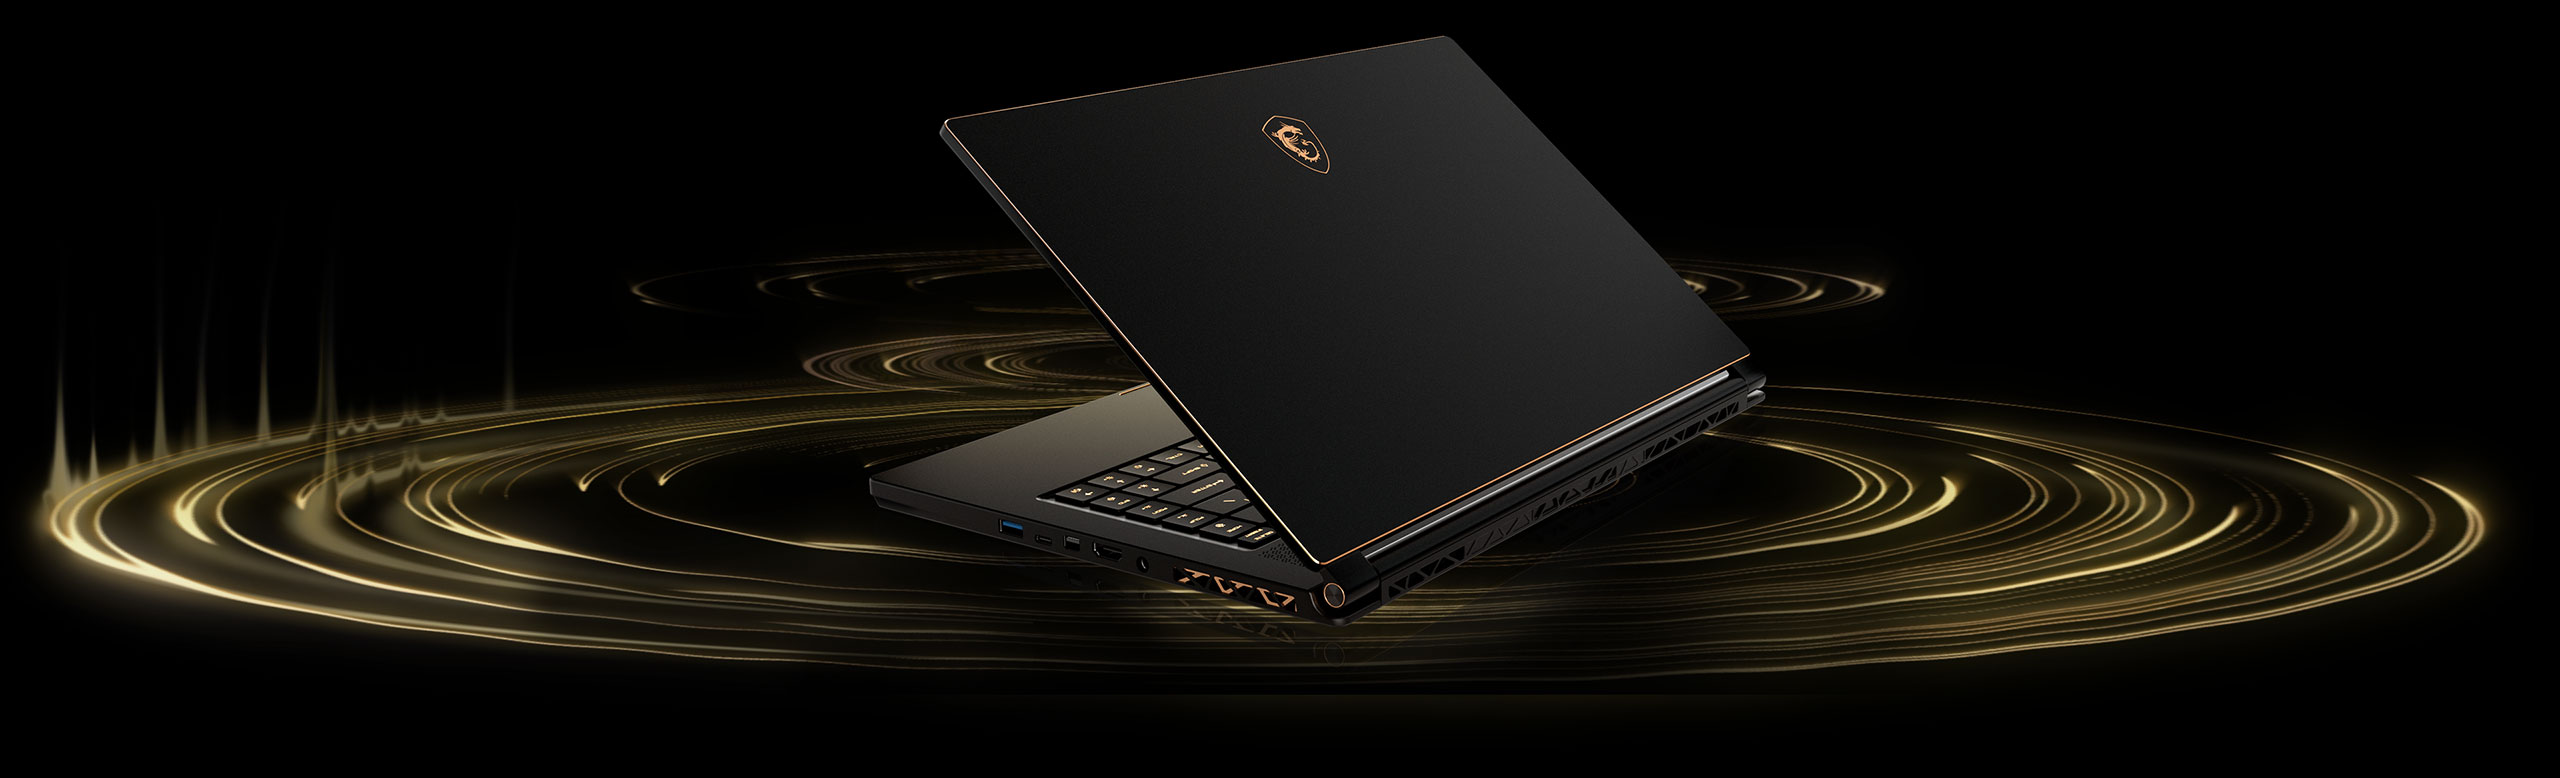 MSI GS65 Stealth Thin 8RF – World's First 144Hz Thin Bezel Gaming Laptop